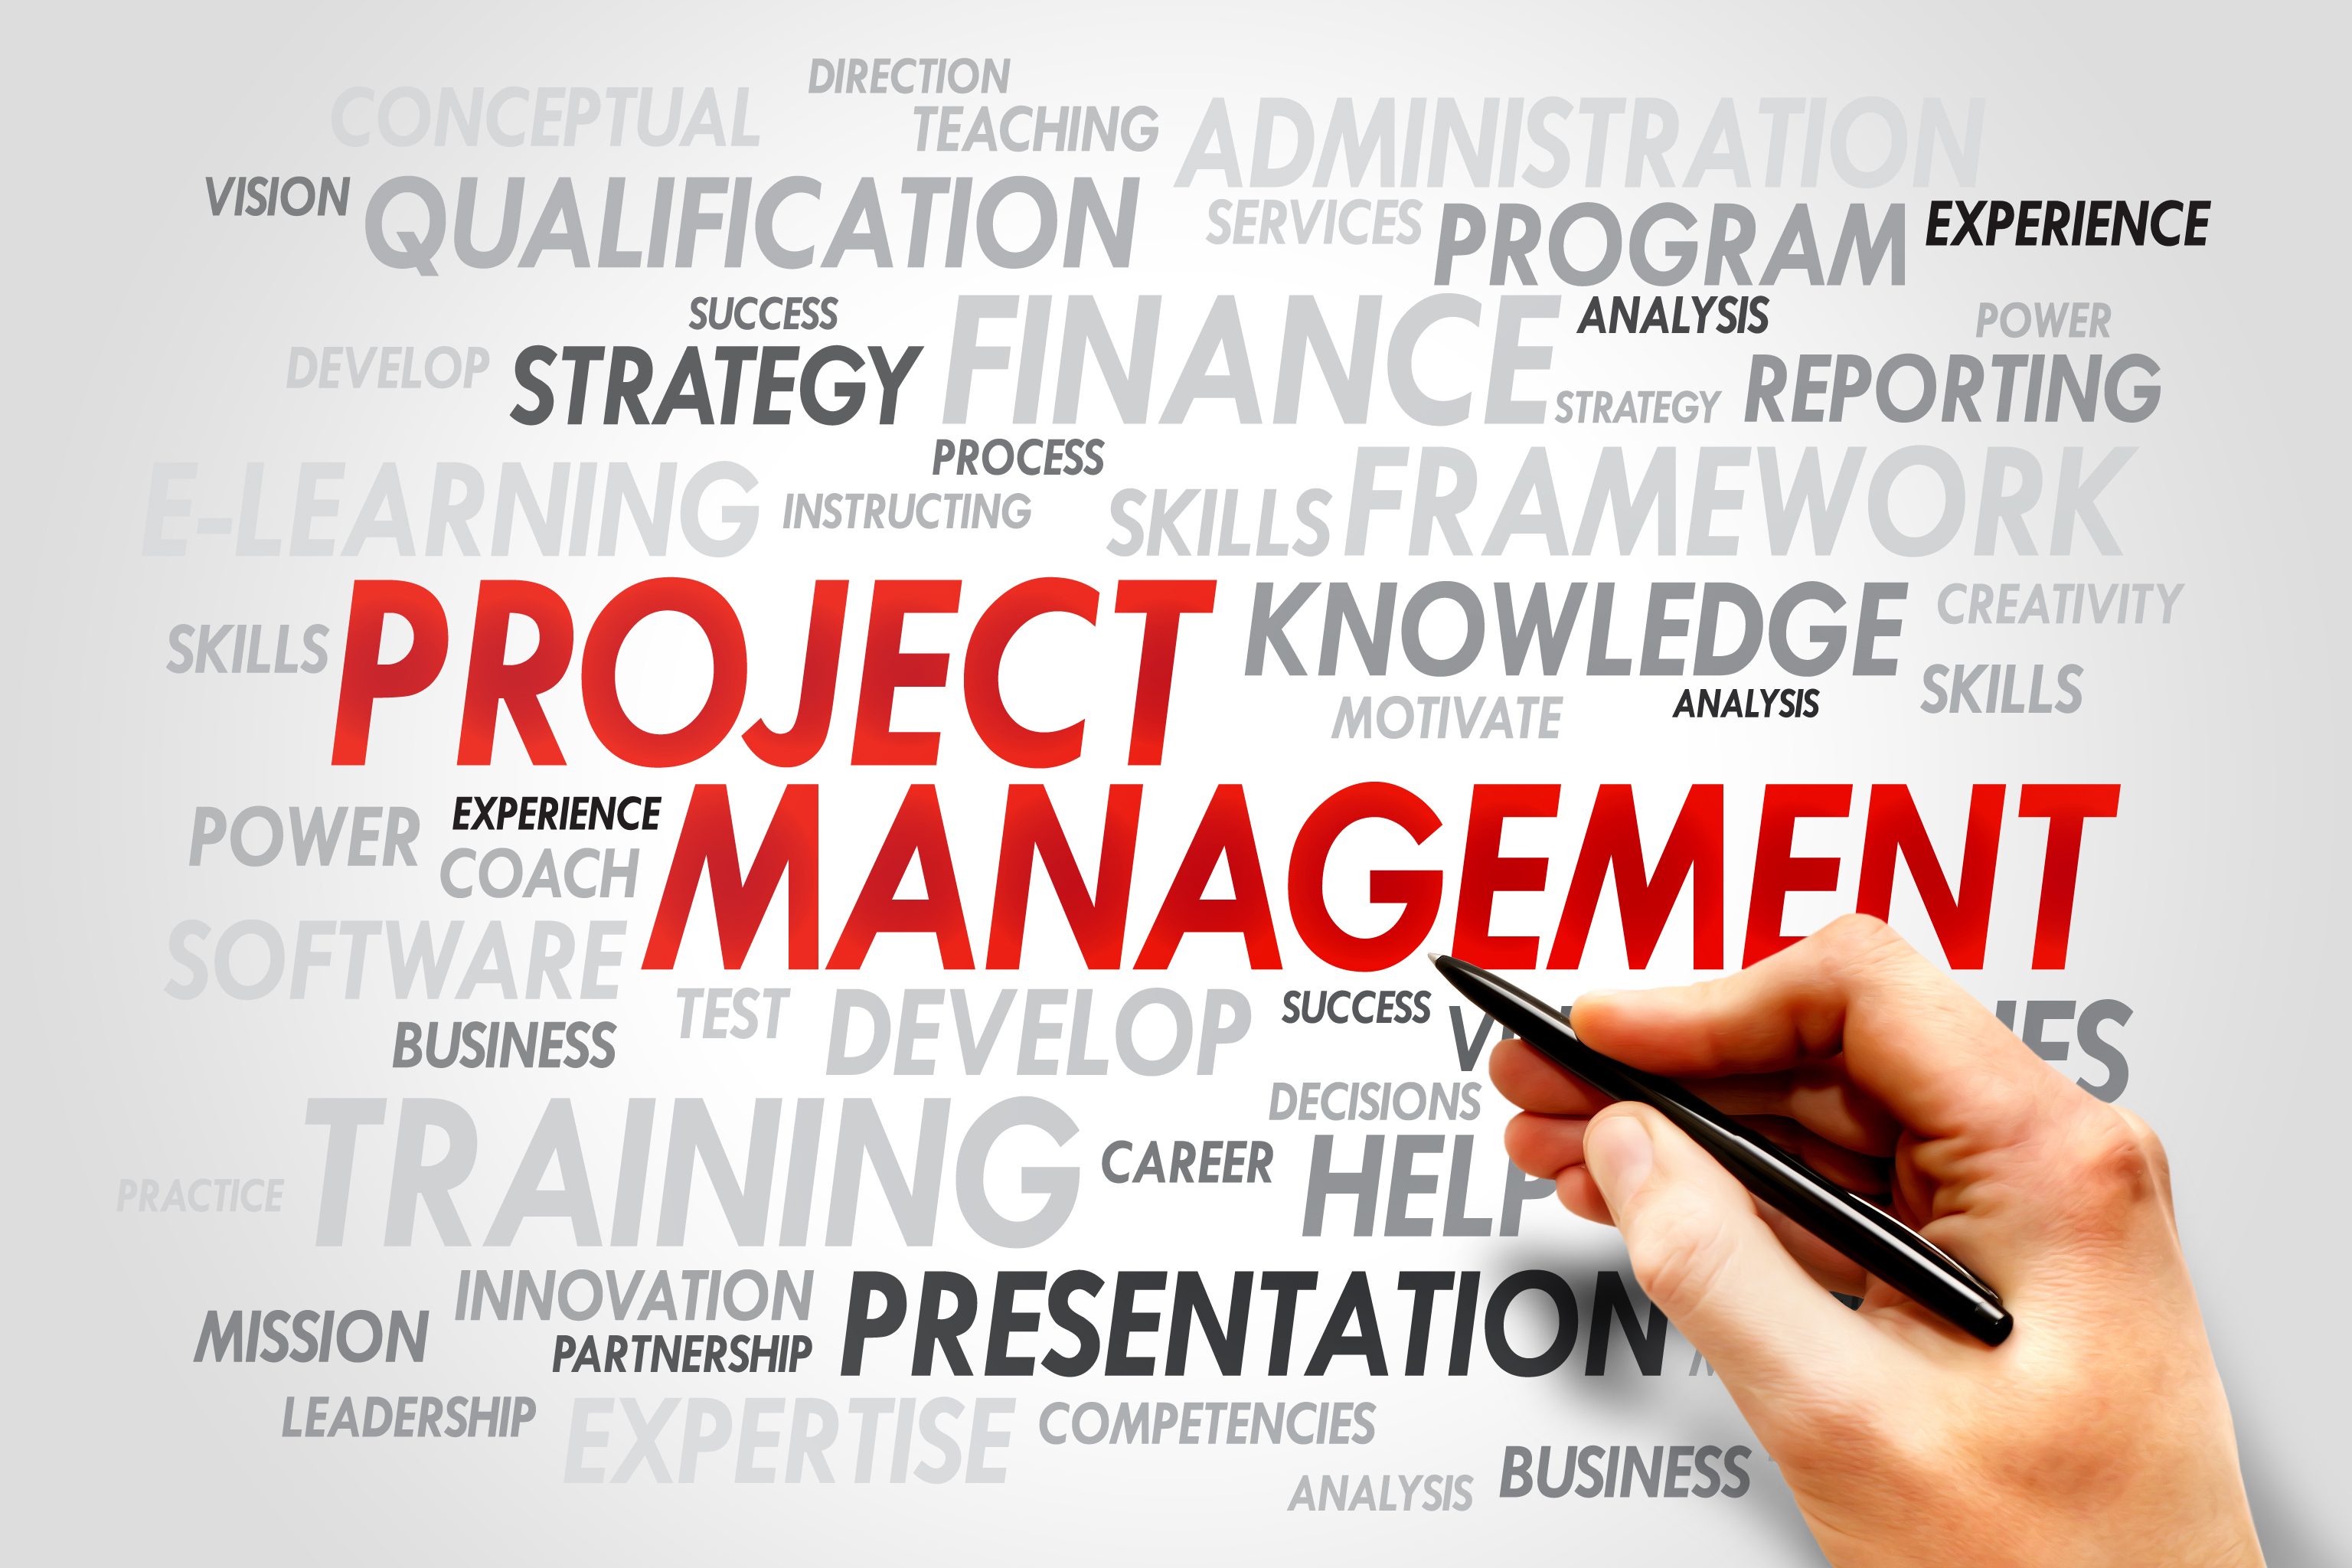 Project Management Archives - Management Excellence by Art Petty